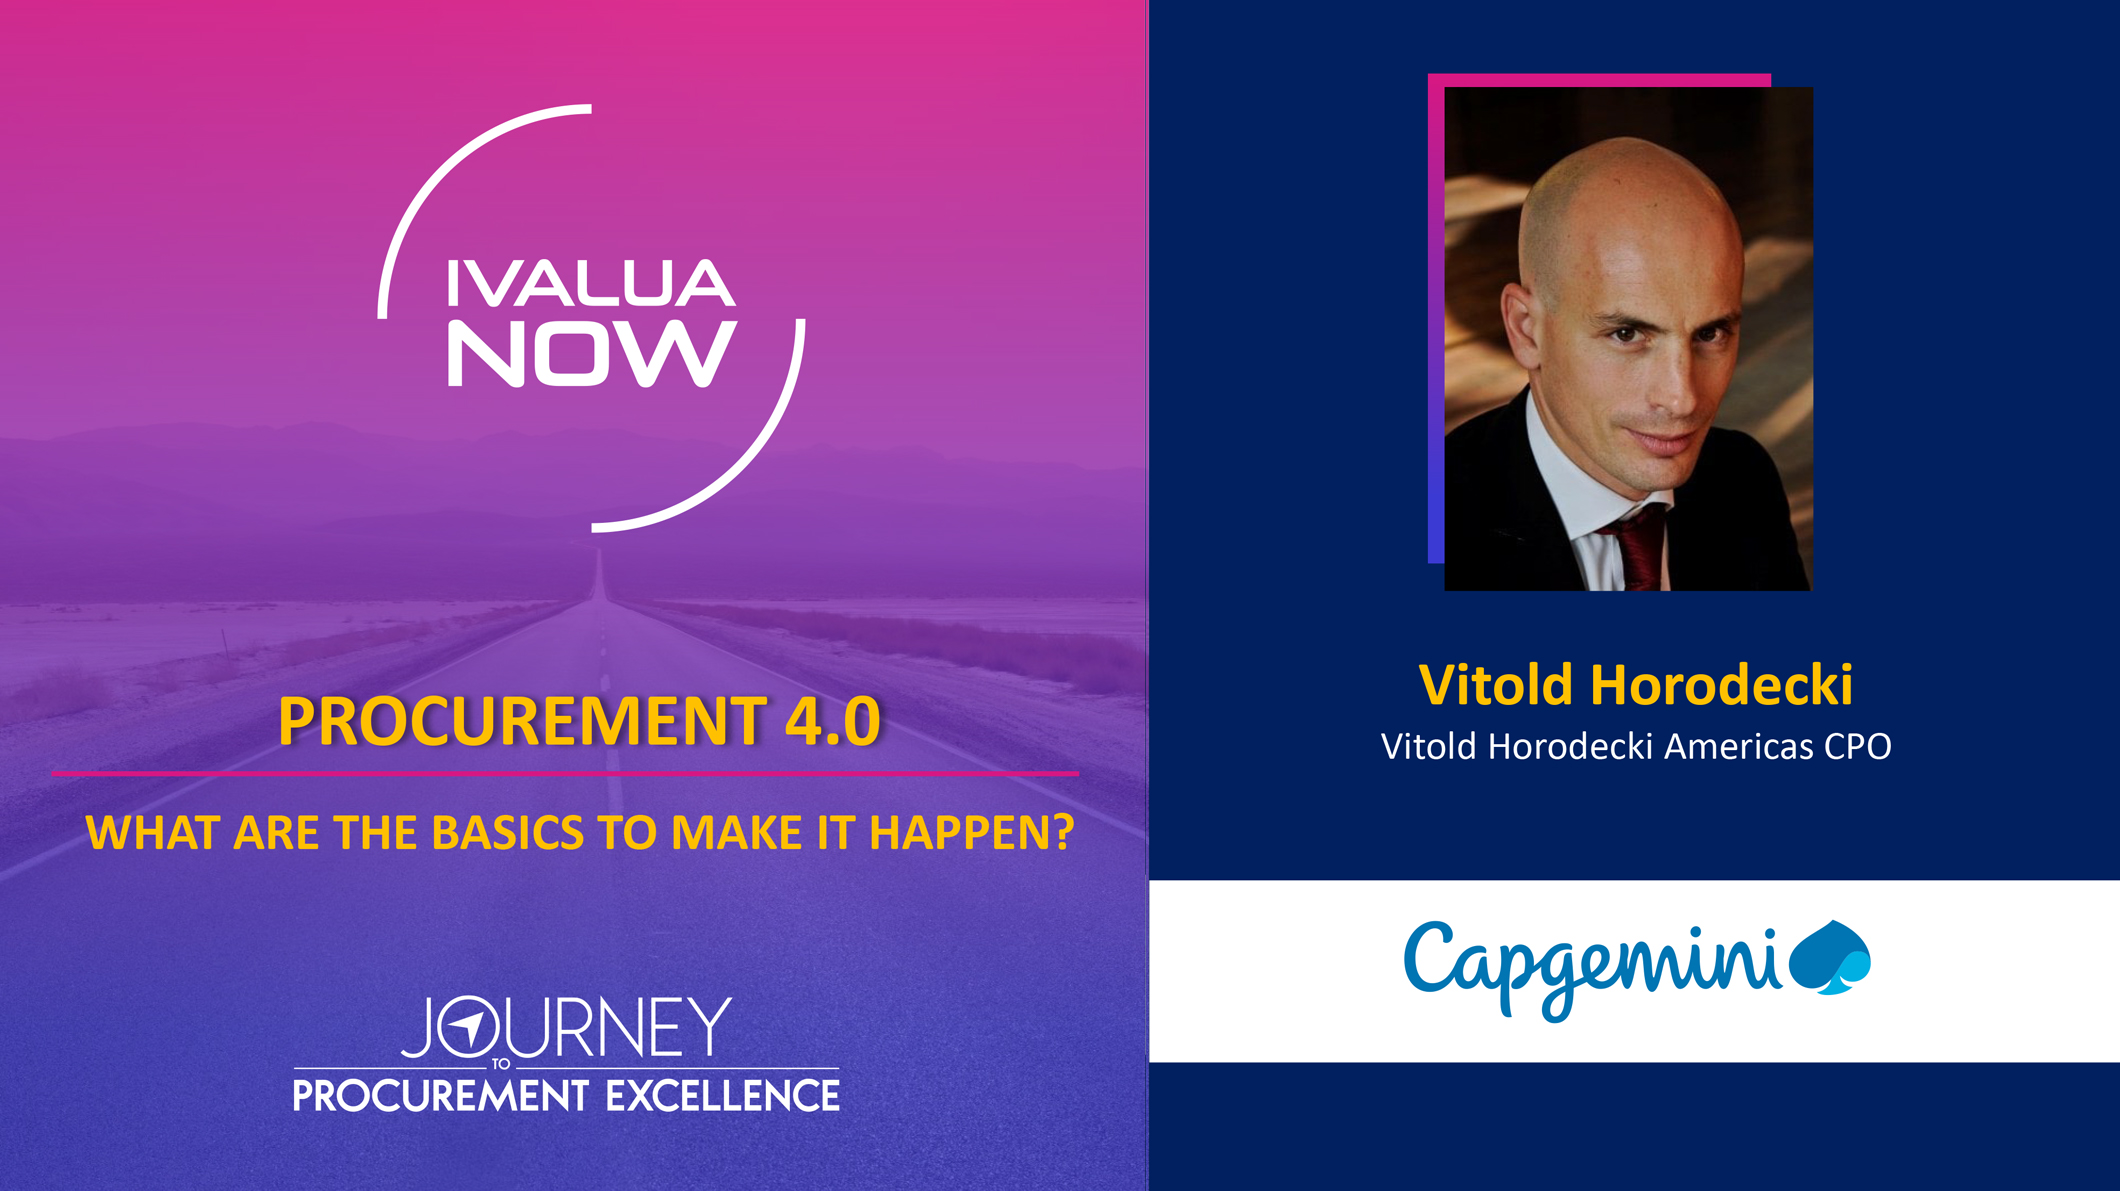 LP-Header-Capgemini-Ivalua-NOW-replay-v1